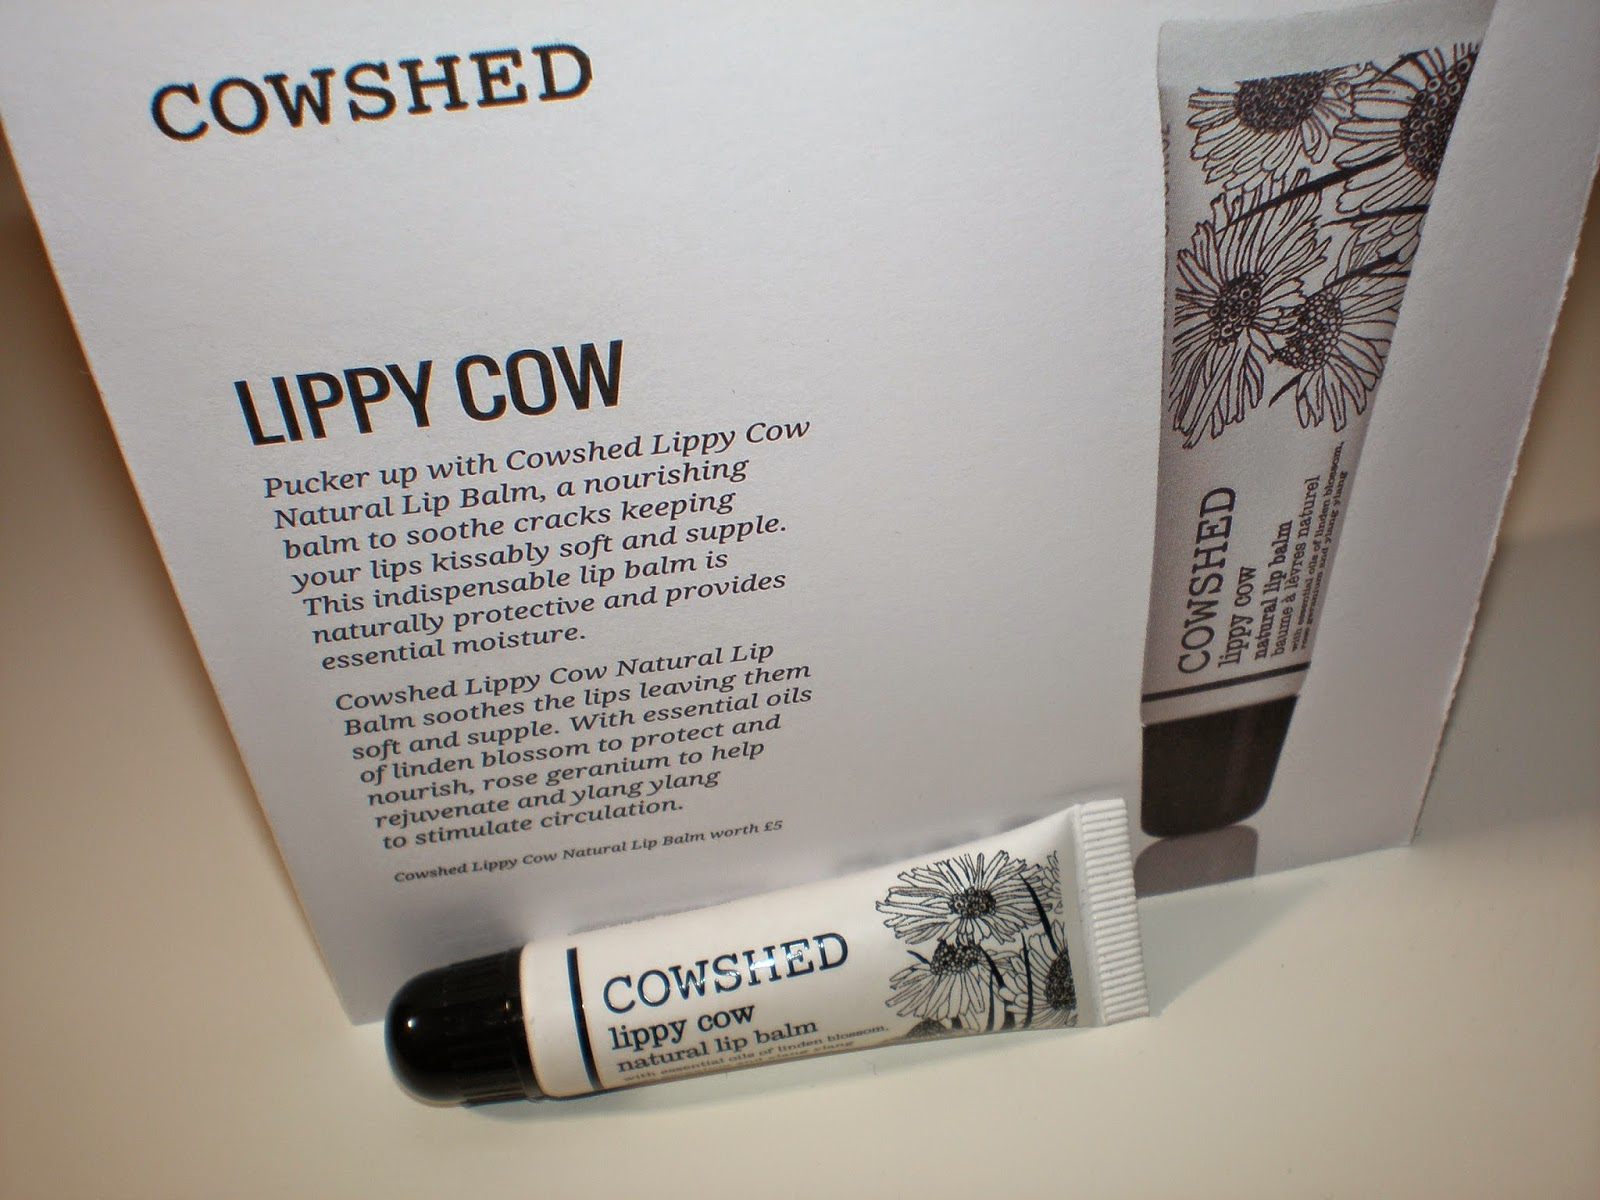 Cowshed Lippy Cow Lip Balm